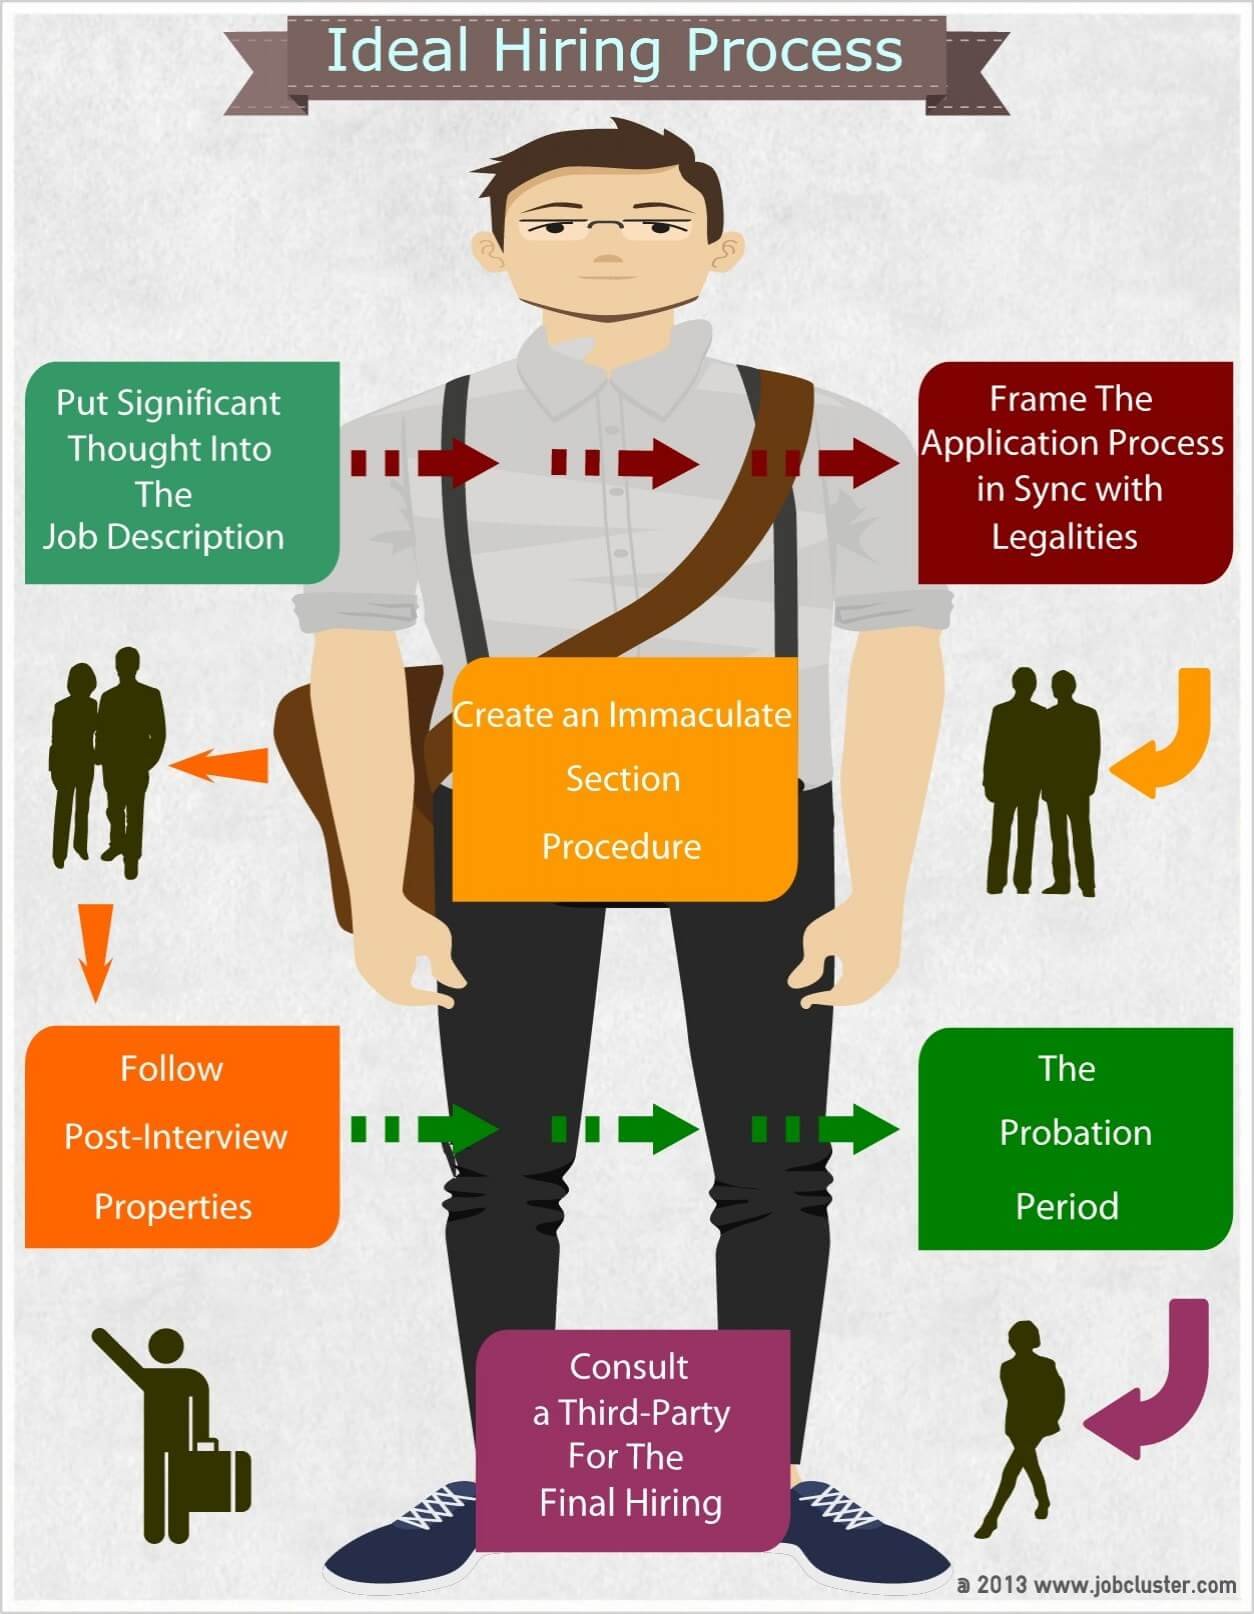 Ideal Hiring Process Guidelines Infographic  JobClustercom Blog